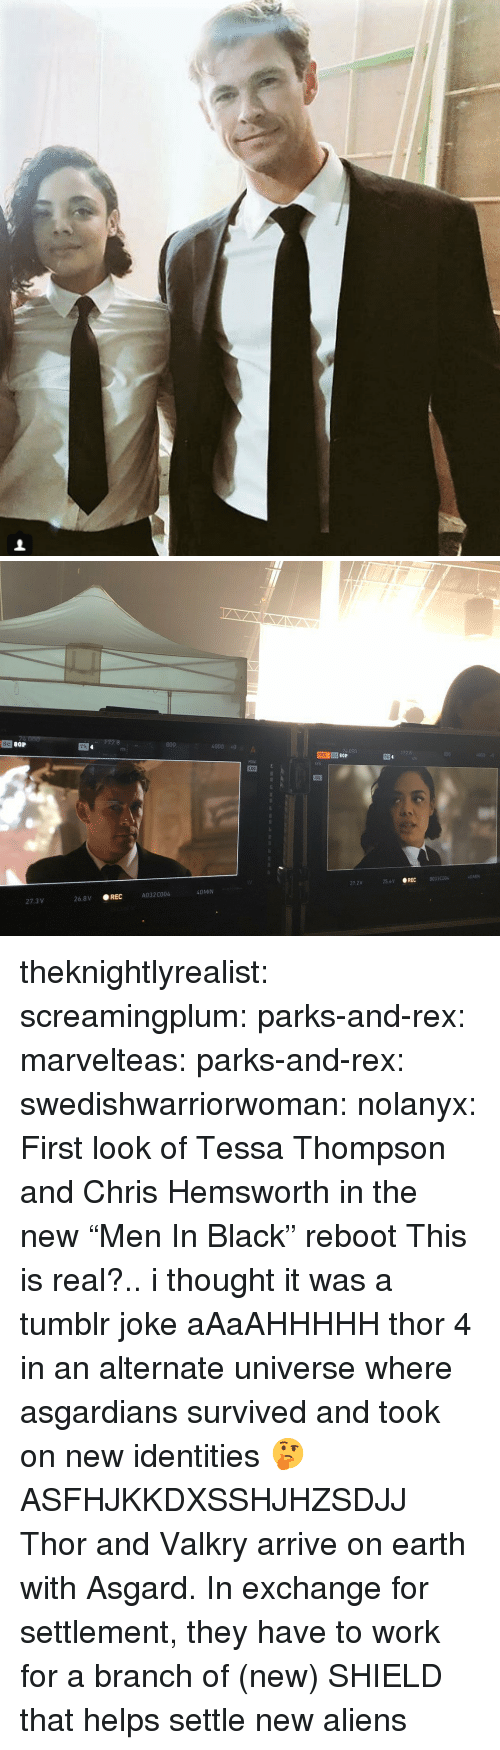 "Chris Hemsworth, Gif, and Tumblr: 80P  172.8  800  Tk  4000 0  REC Sc  256V REC  80330004  27.2V  40 MIN  A032C004  27.3 V  26.8V REC theknightlyrealist:  screamingplum:  parks-and-rex: marvelteas:  parks-and-rex:  swedishwarriorwoman:  nolanyx: First look of Tessa Thompson and Chris Hemsworth in the new ""Men In Black"" reboot   This is real?.. i thought it was a tumblr joke   aAaAHHHHH  thor 4 in an alternate universe where asgardians survived and took on new identities 🤔    ASFHJKKDXSSHJHZSDJJ  Thor and Valkry arrive on earth with Asgard. In exchange for settlement, they have to work for a branch of (new) SHIELD that helps settle new aliens"